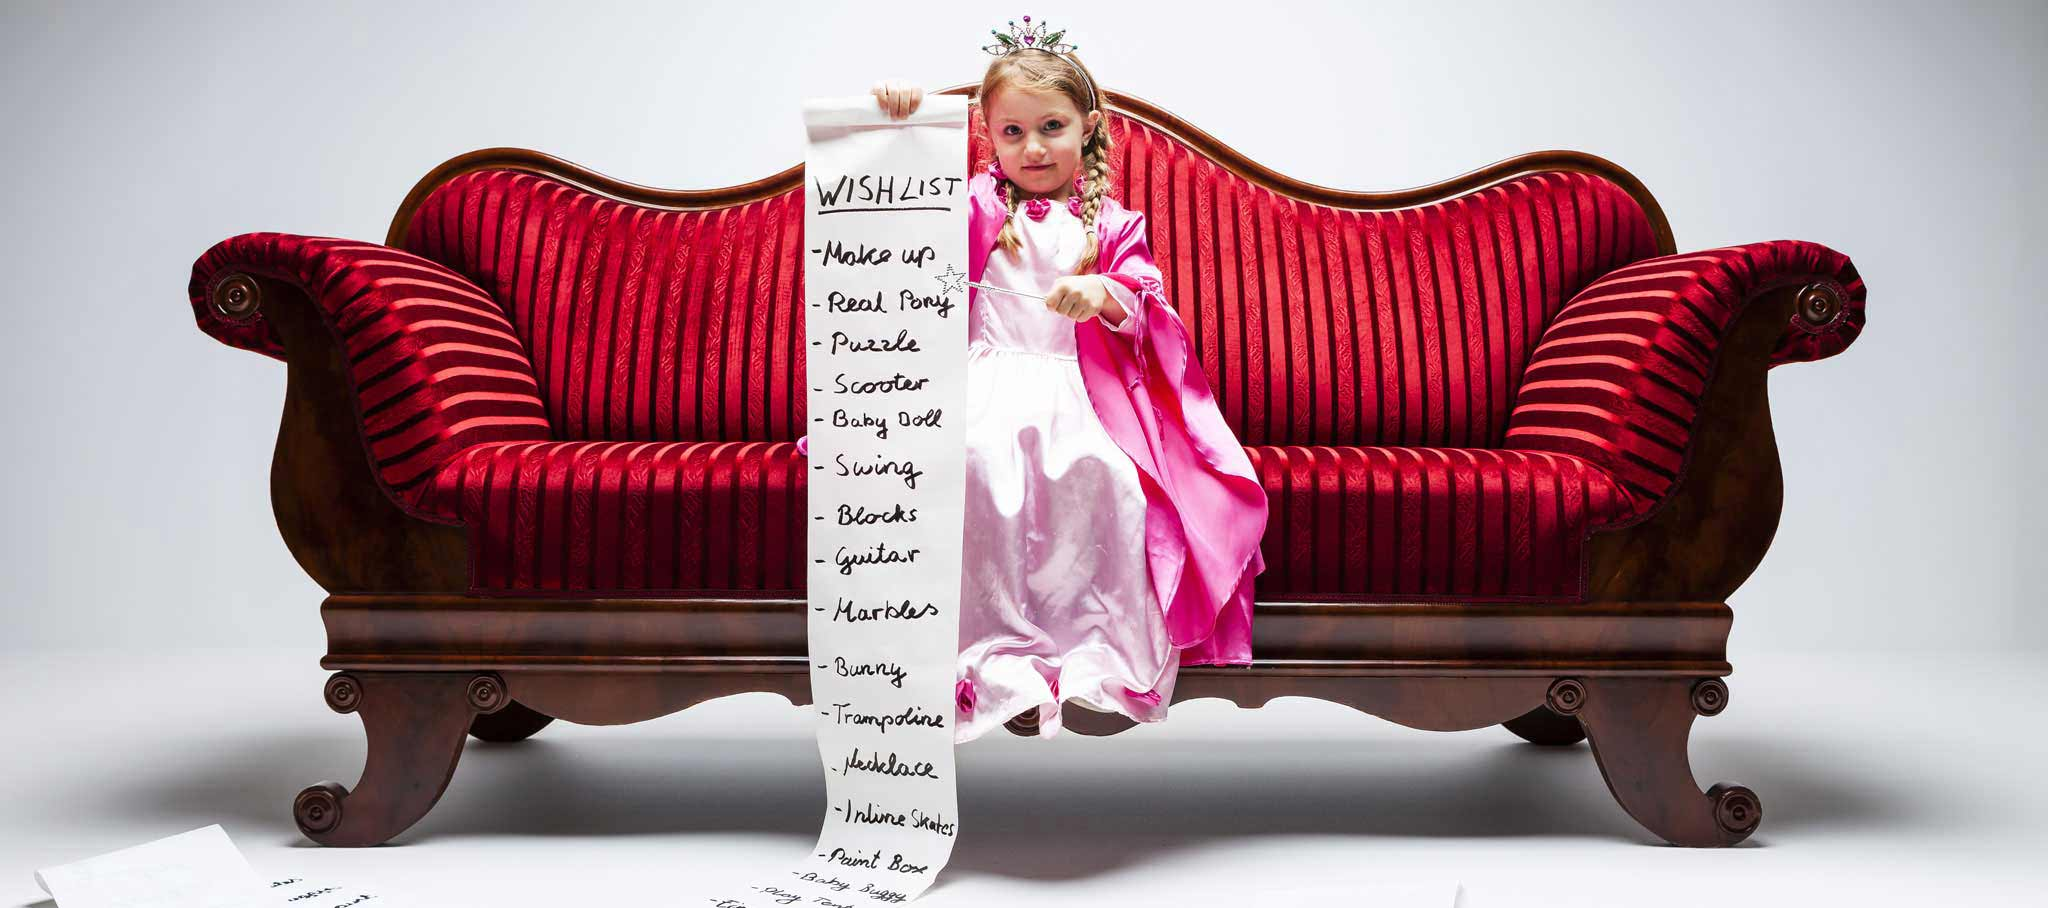 My Little Princess Party Wish List